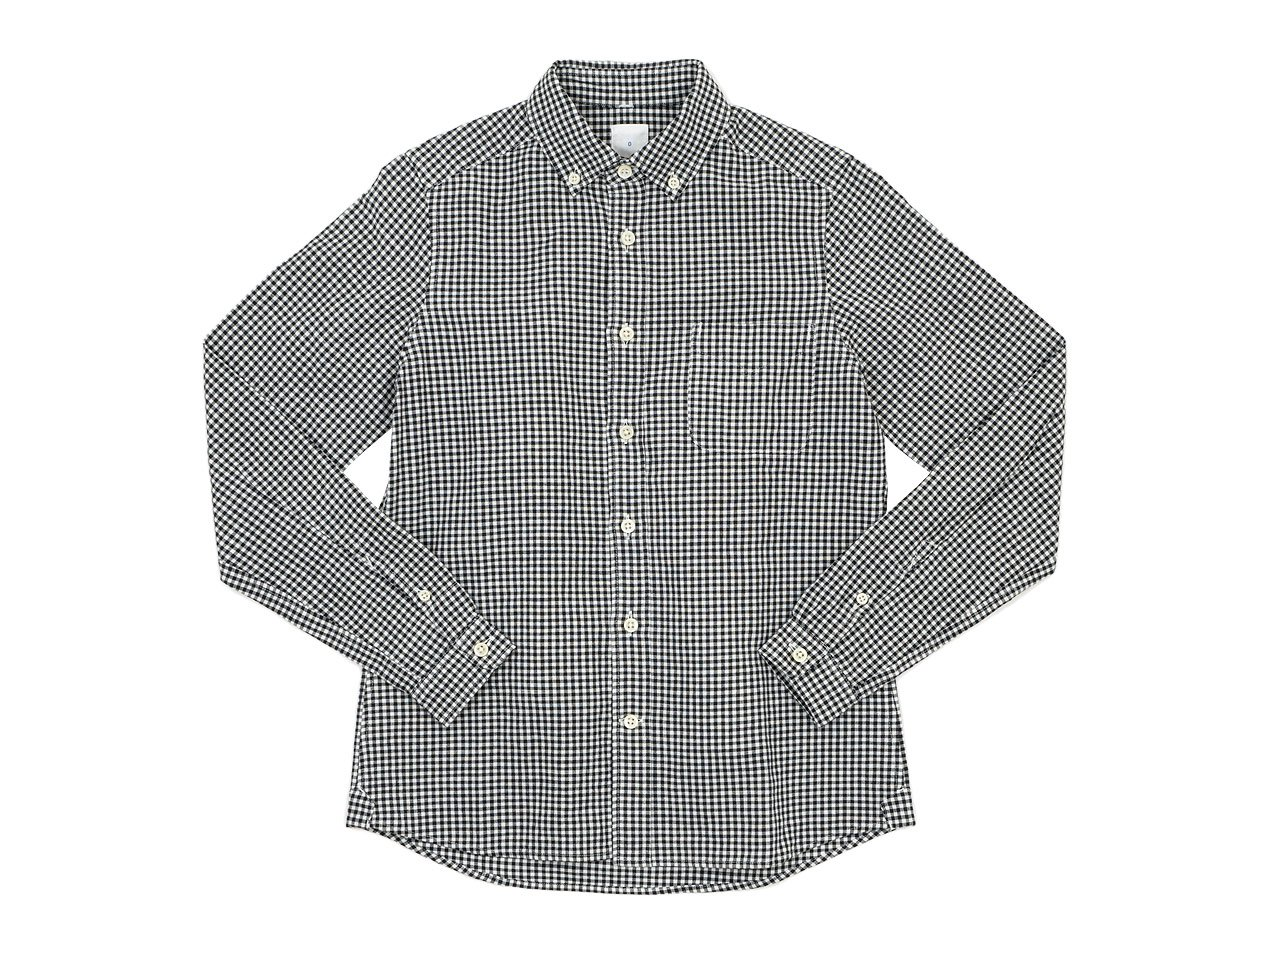 maillot sunset gingham B.D. shirts BLACK x WHITE